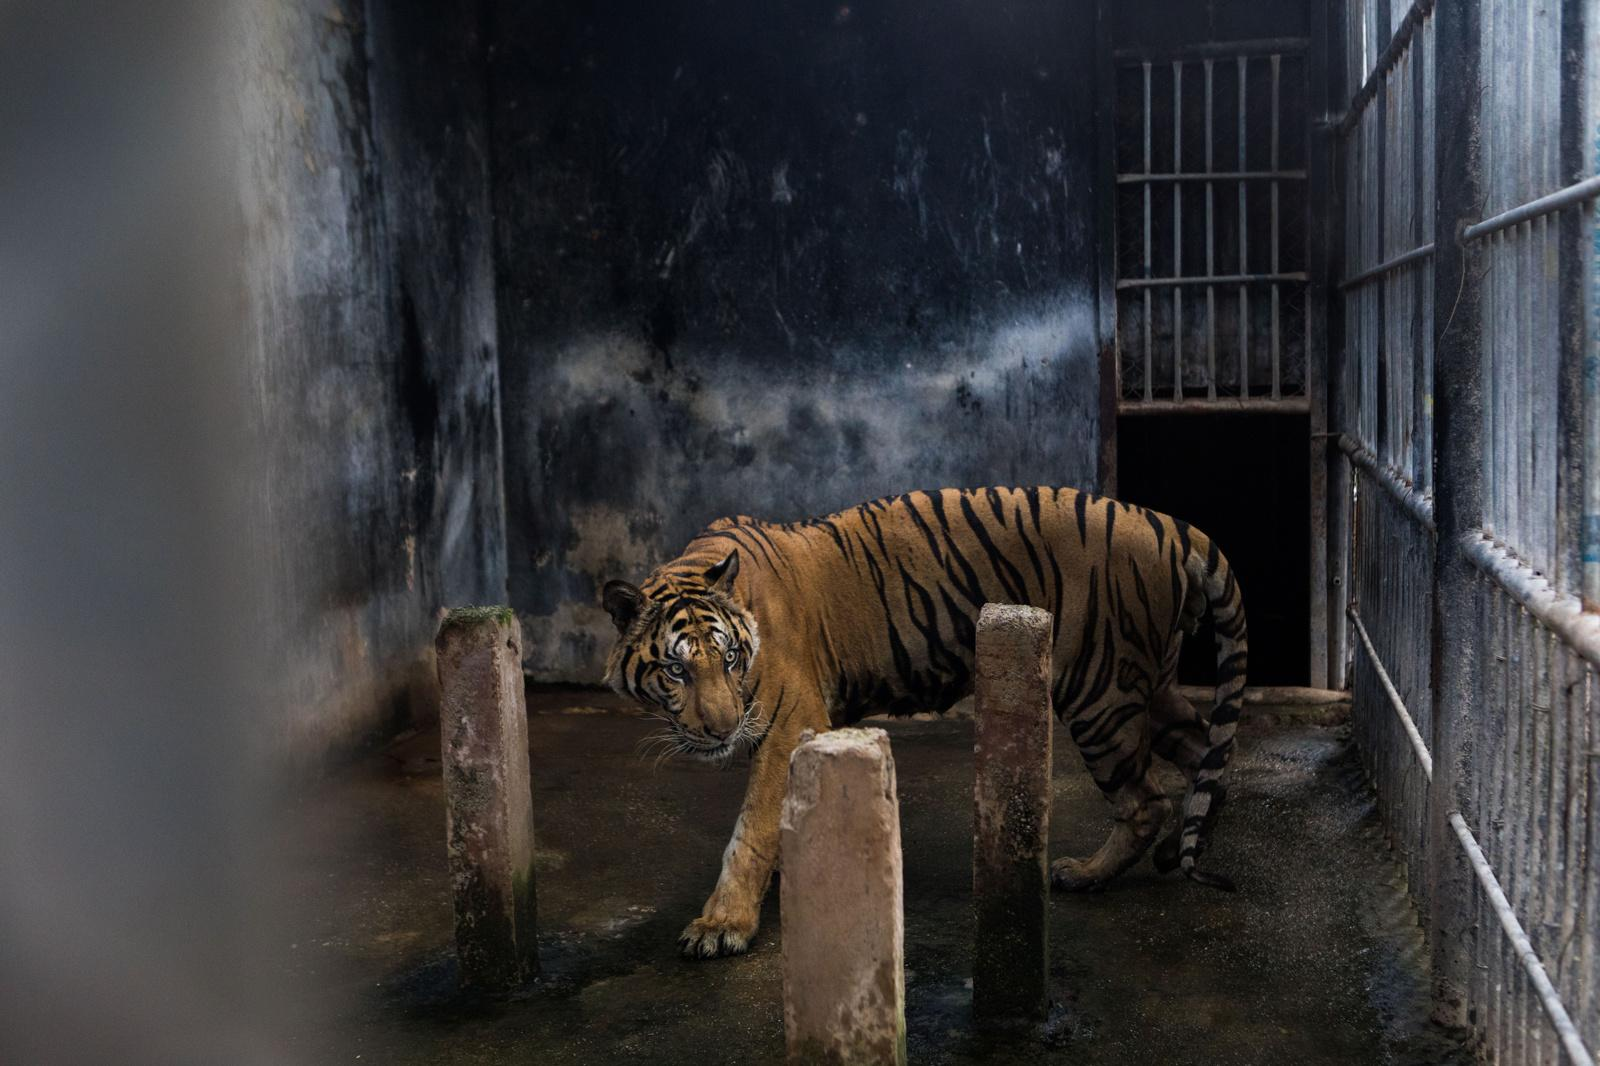 Ratchaburi, Thailand � September 20, 2019 : One of the two tigers permitted for reporters to see during a press event at the DNP Wildlife Reproduction Centre in Khao Pratab Chang. In June 2016, Thailand's Department of National Parks, Wildlife and Plant Conservation (DNP) confiscated 147 tigers from the infamous Tiger Temple. Since then, 86 of the tigers have died in the government's care. Credit: Amanda Mustard for New York Times